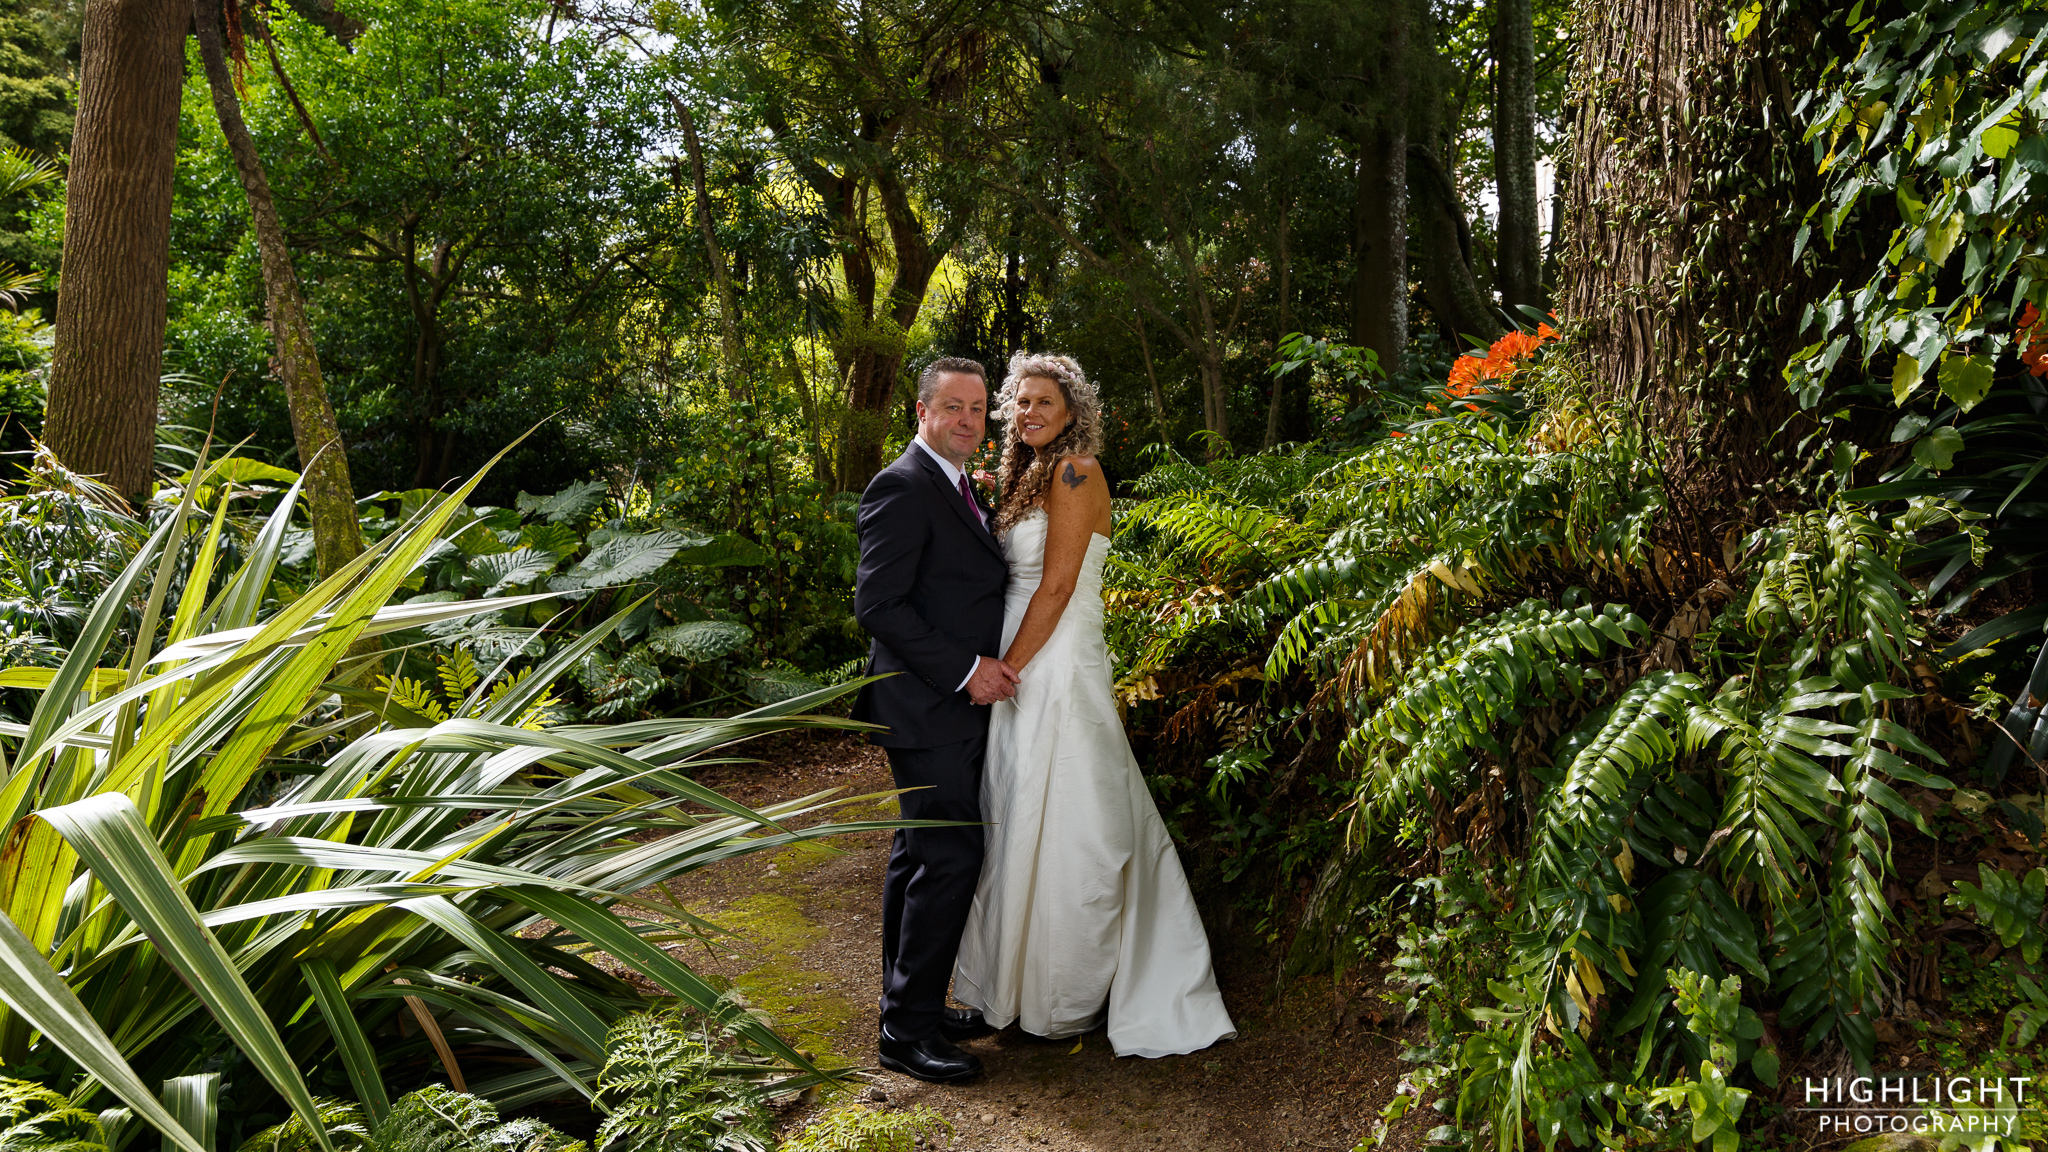 highlight_wedding_photography_palmerston_north_manawatu_chalet_wedding-69.jpg